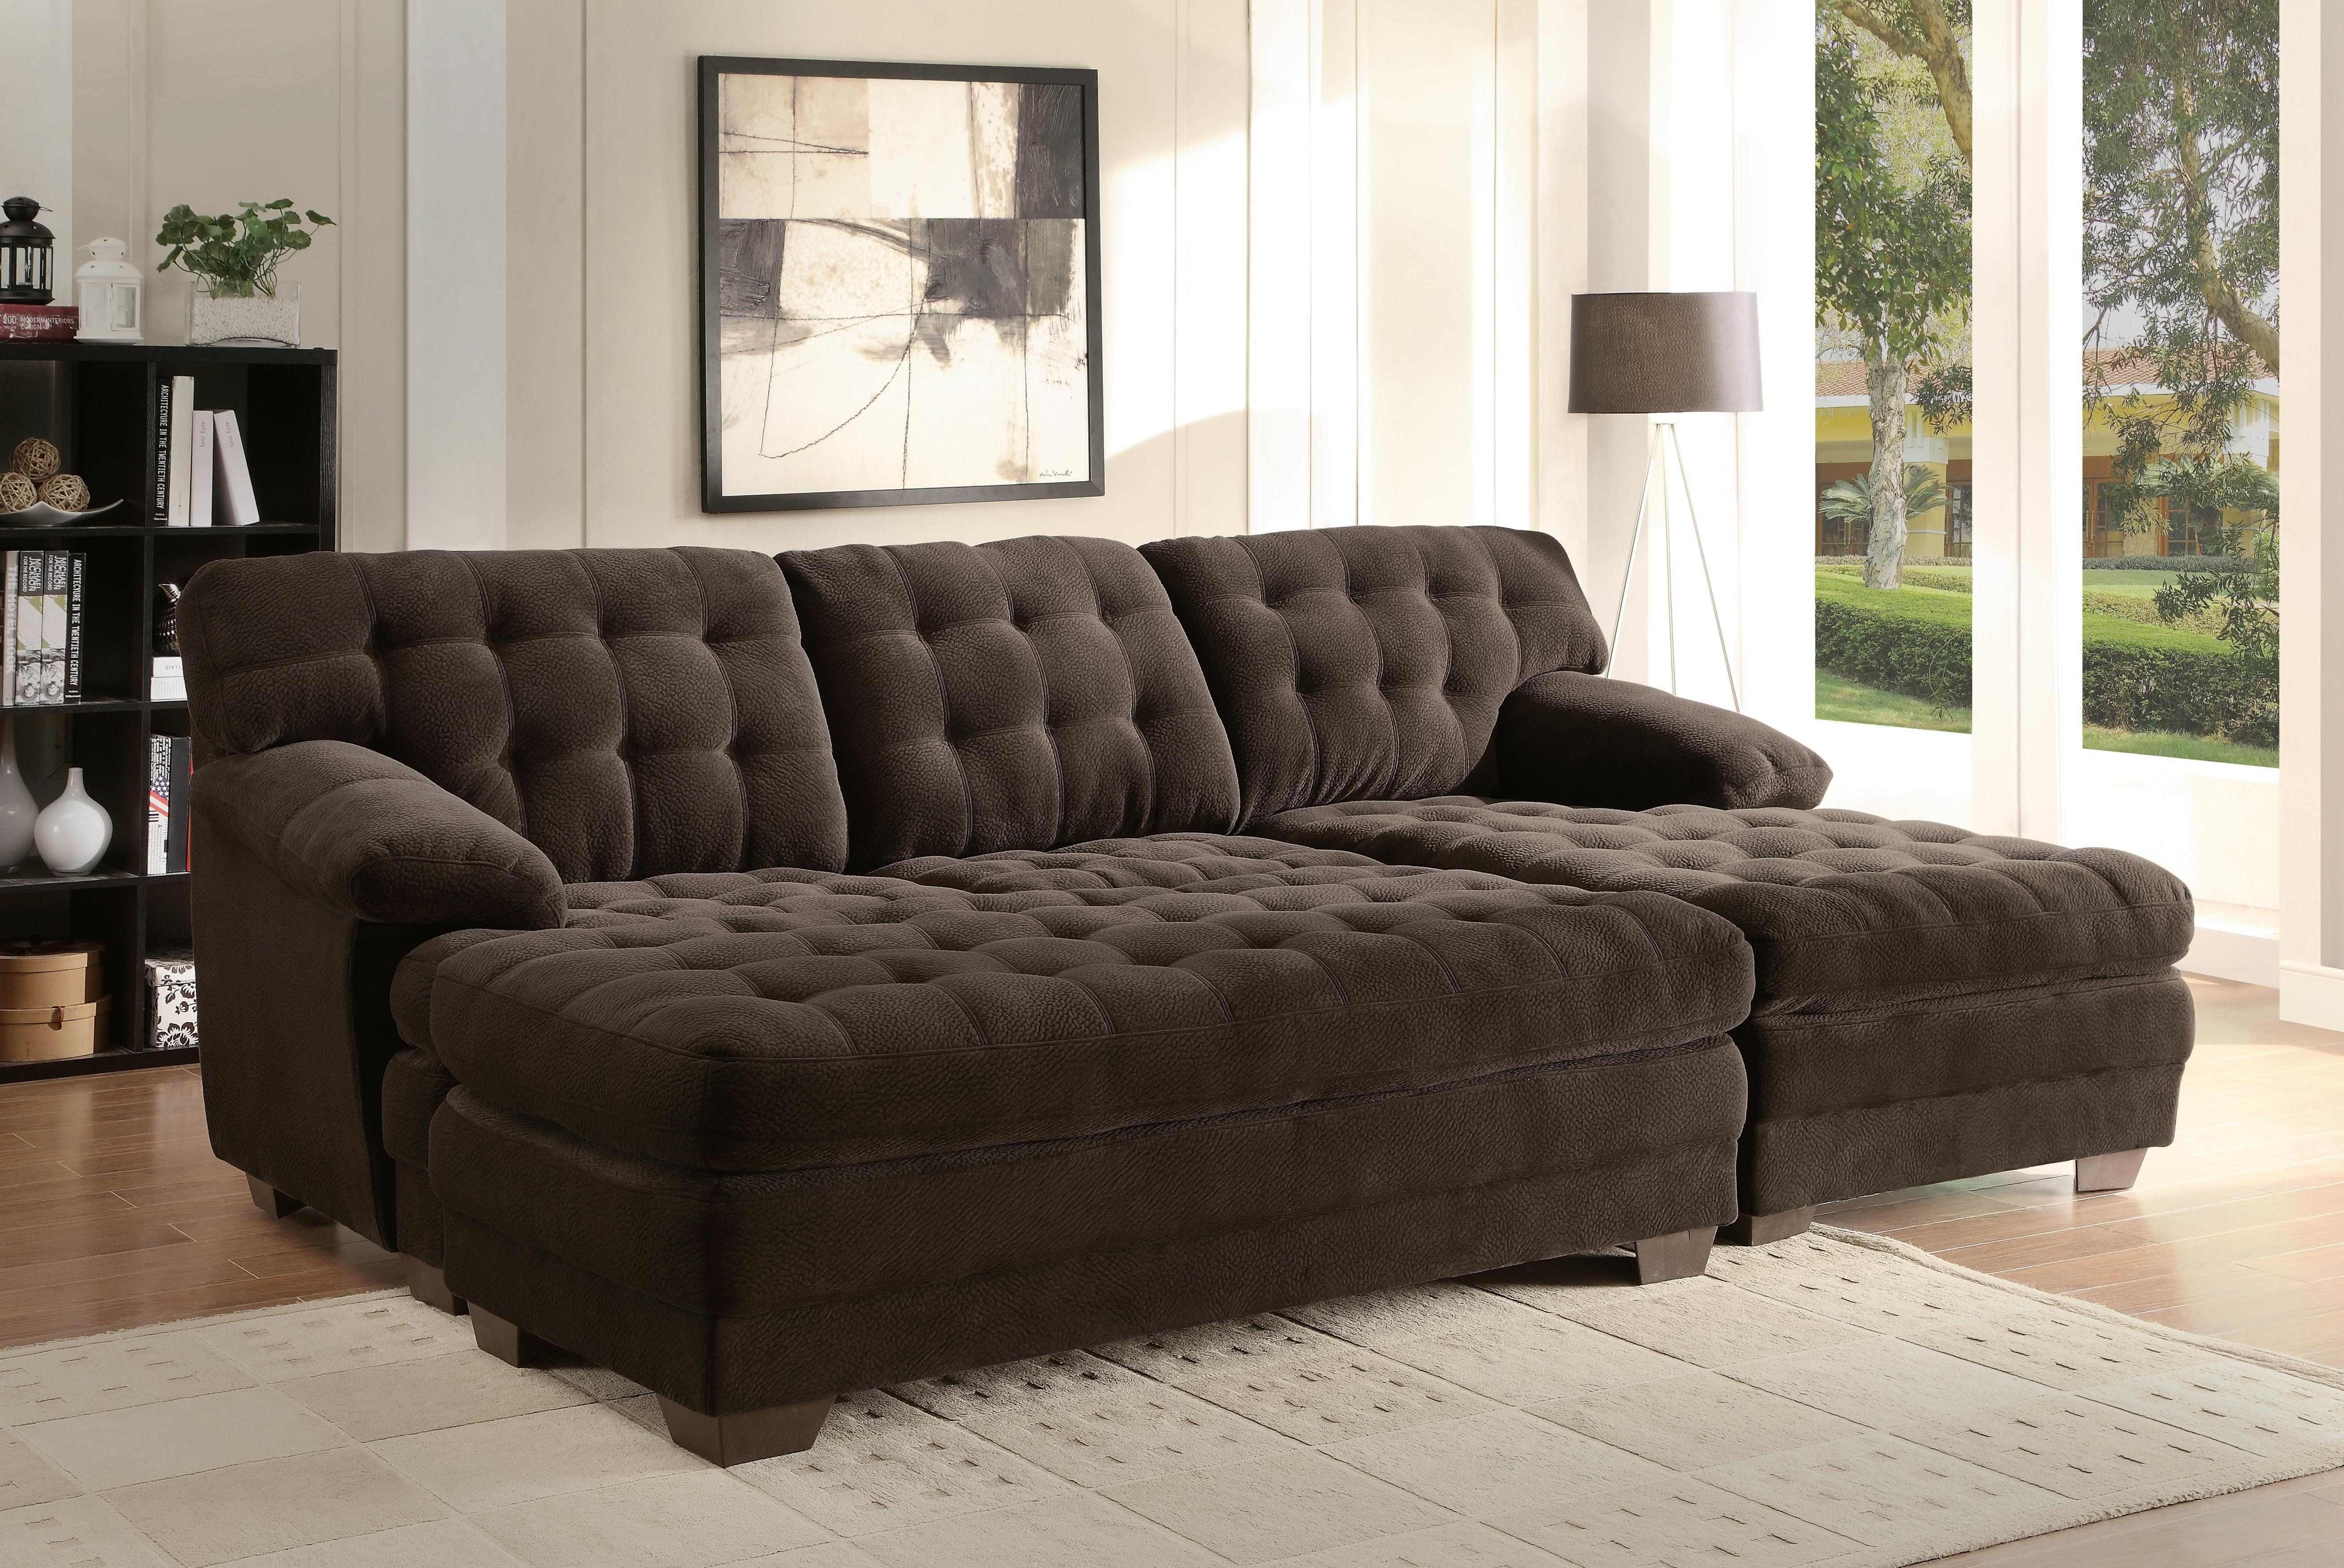 Sofa : Attractive Extra Large Sofa Extra Large Sofa Extra Large inside Extra Large Sofas (Image 10 of 10)